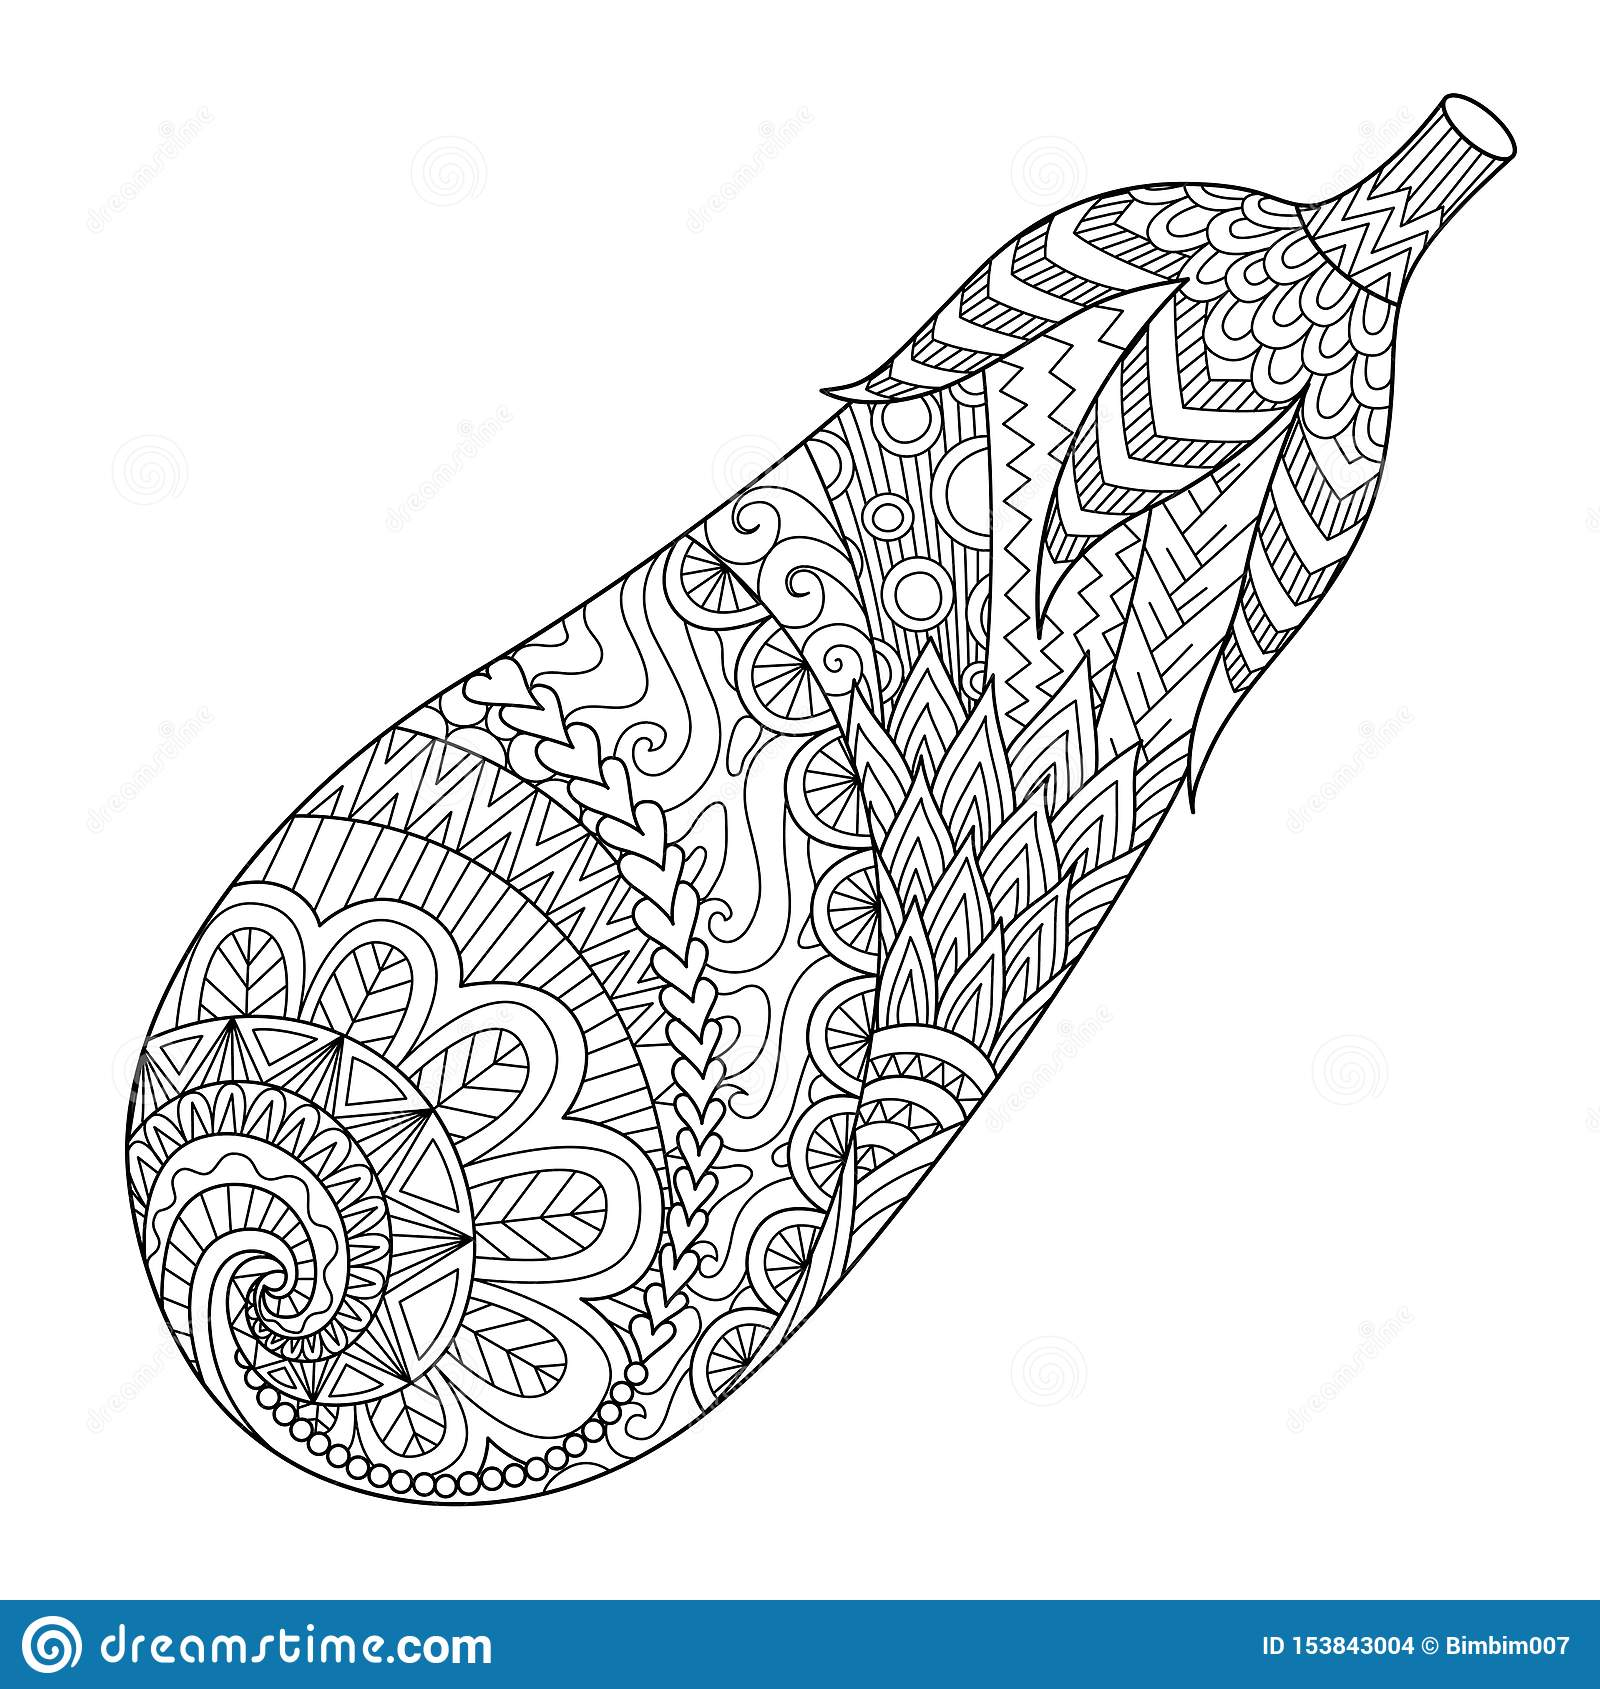 Line Art Of Eggplant, Doodle Art For Printing On Stuff And ...